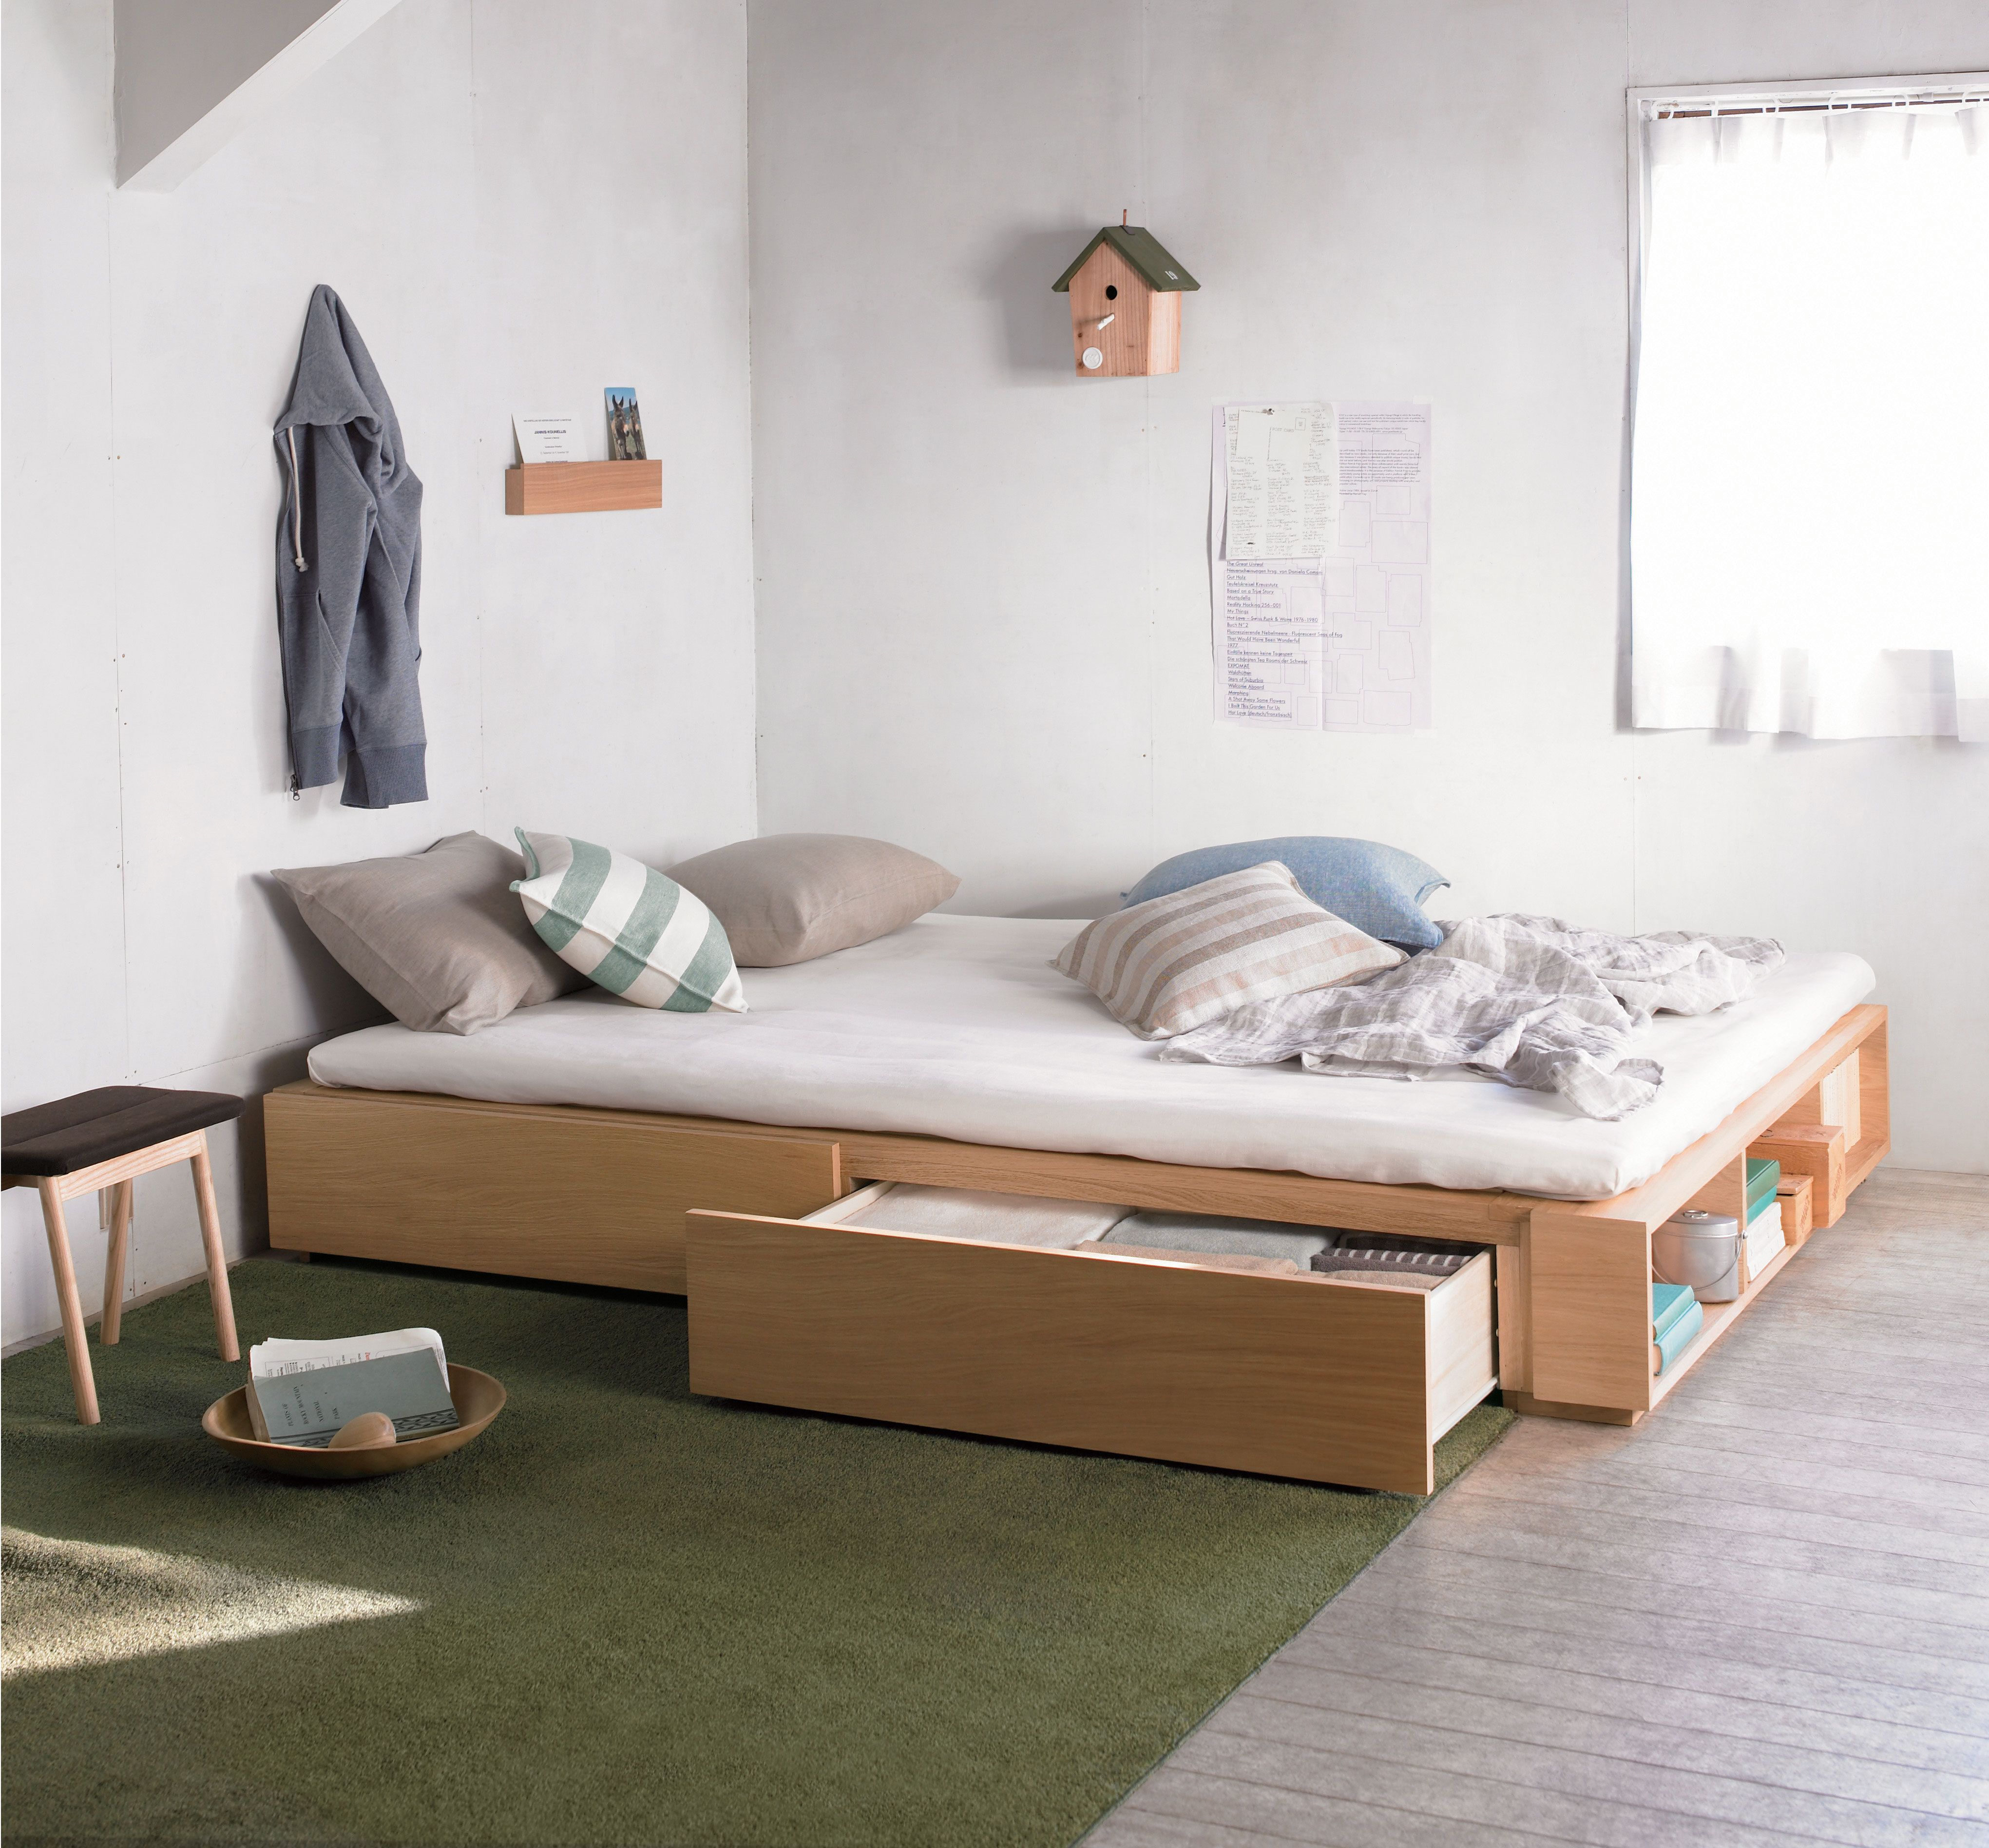 Lit Muji Feeling Really Inspired By Muji Bedrooms Lately Hope To